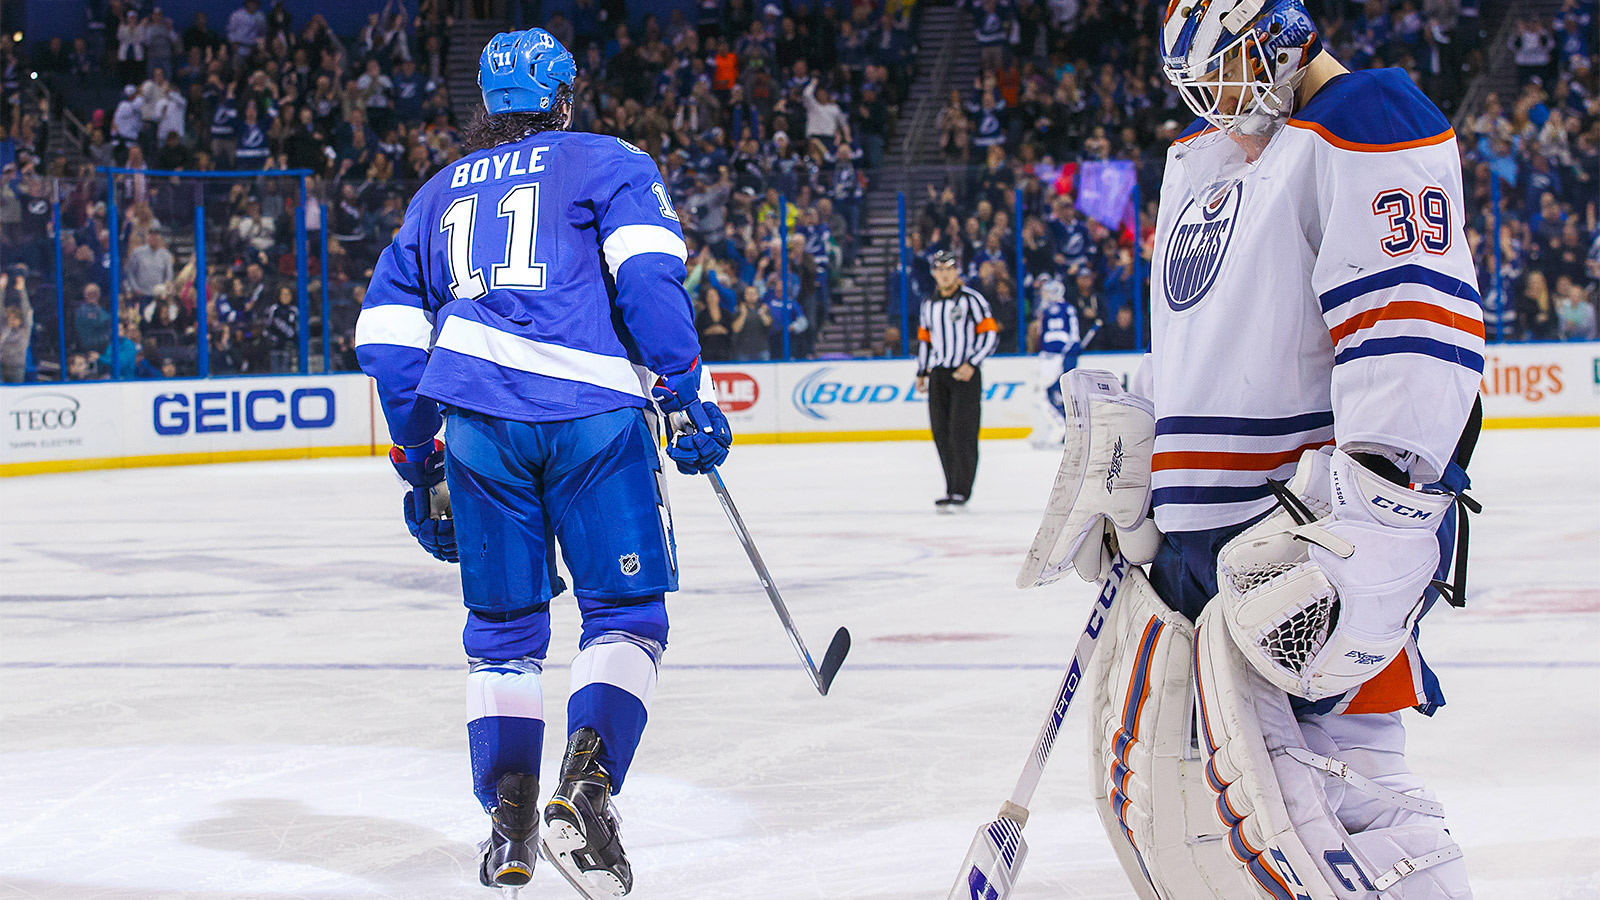 NHL's most laughable club loses on one of season's most laughable goals